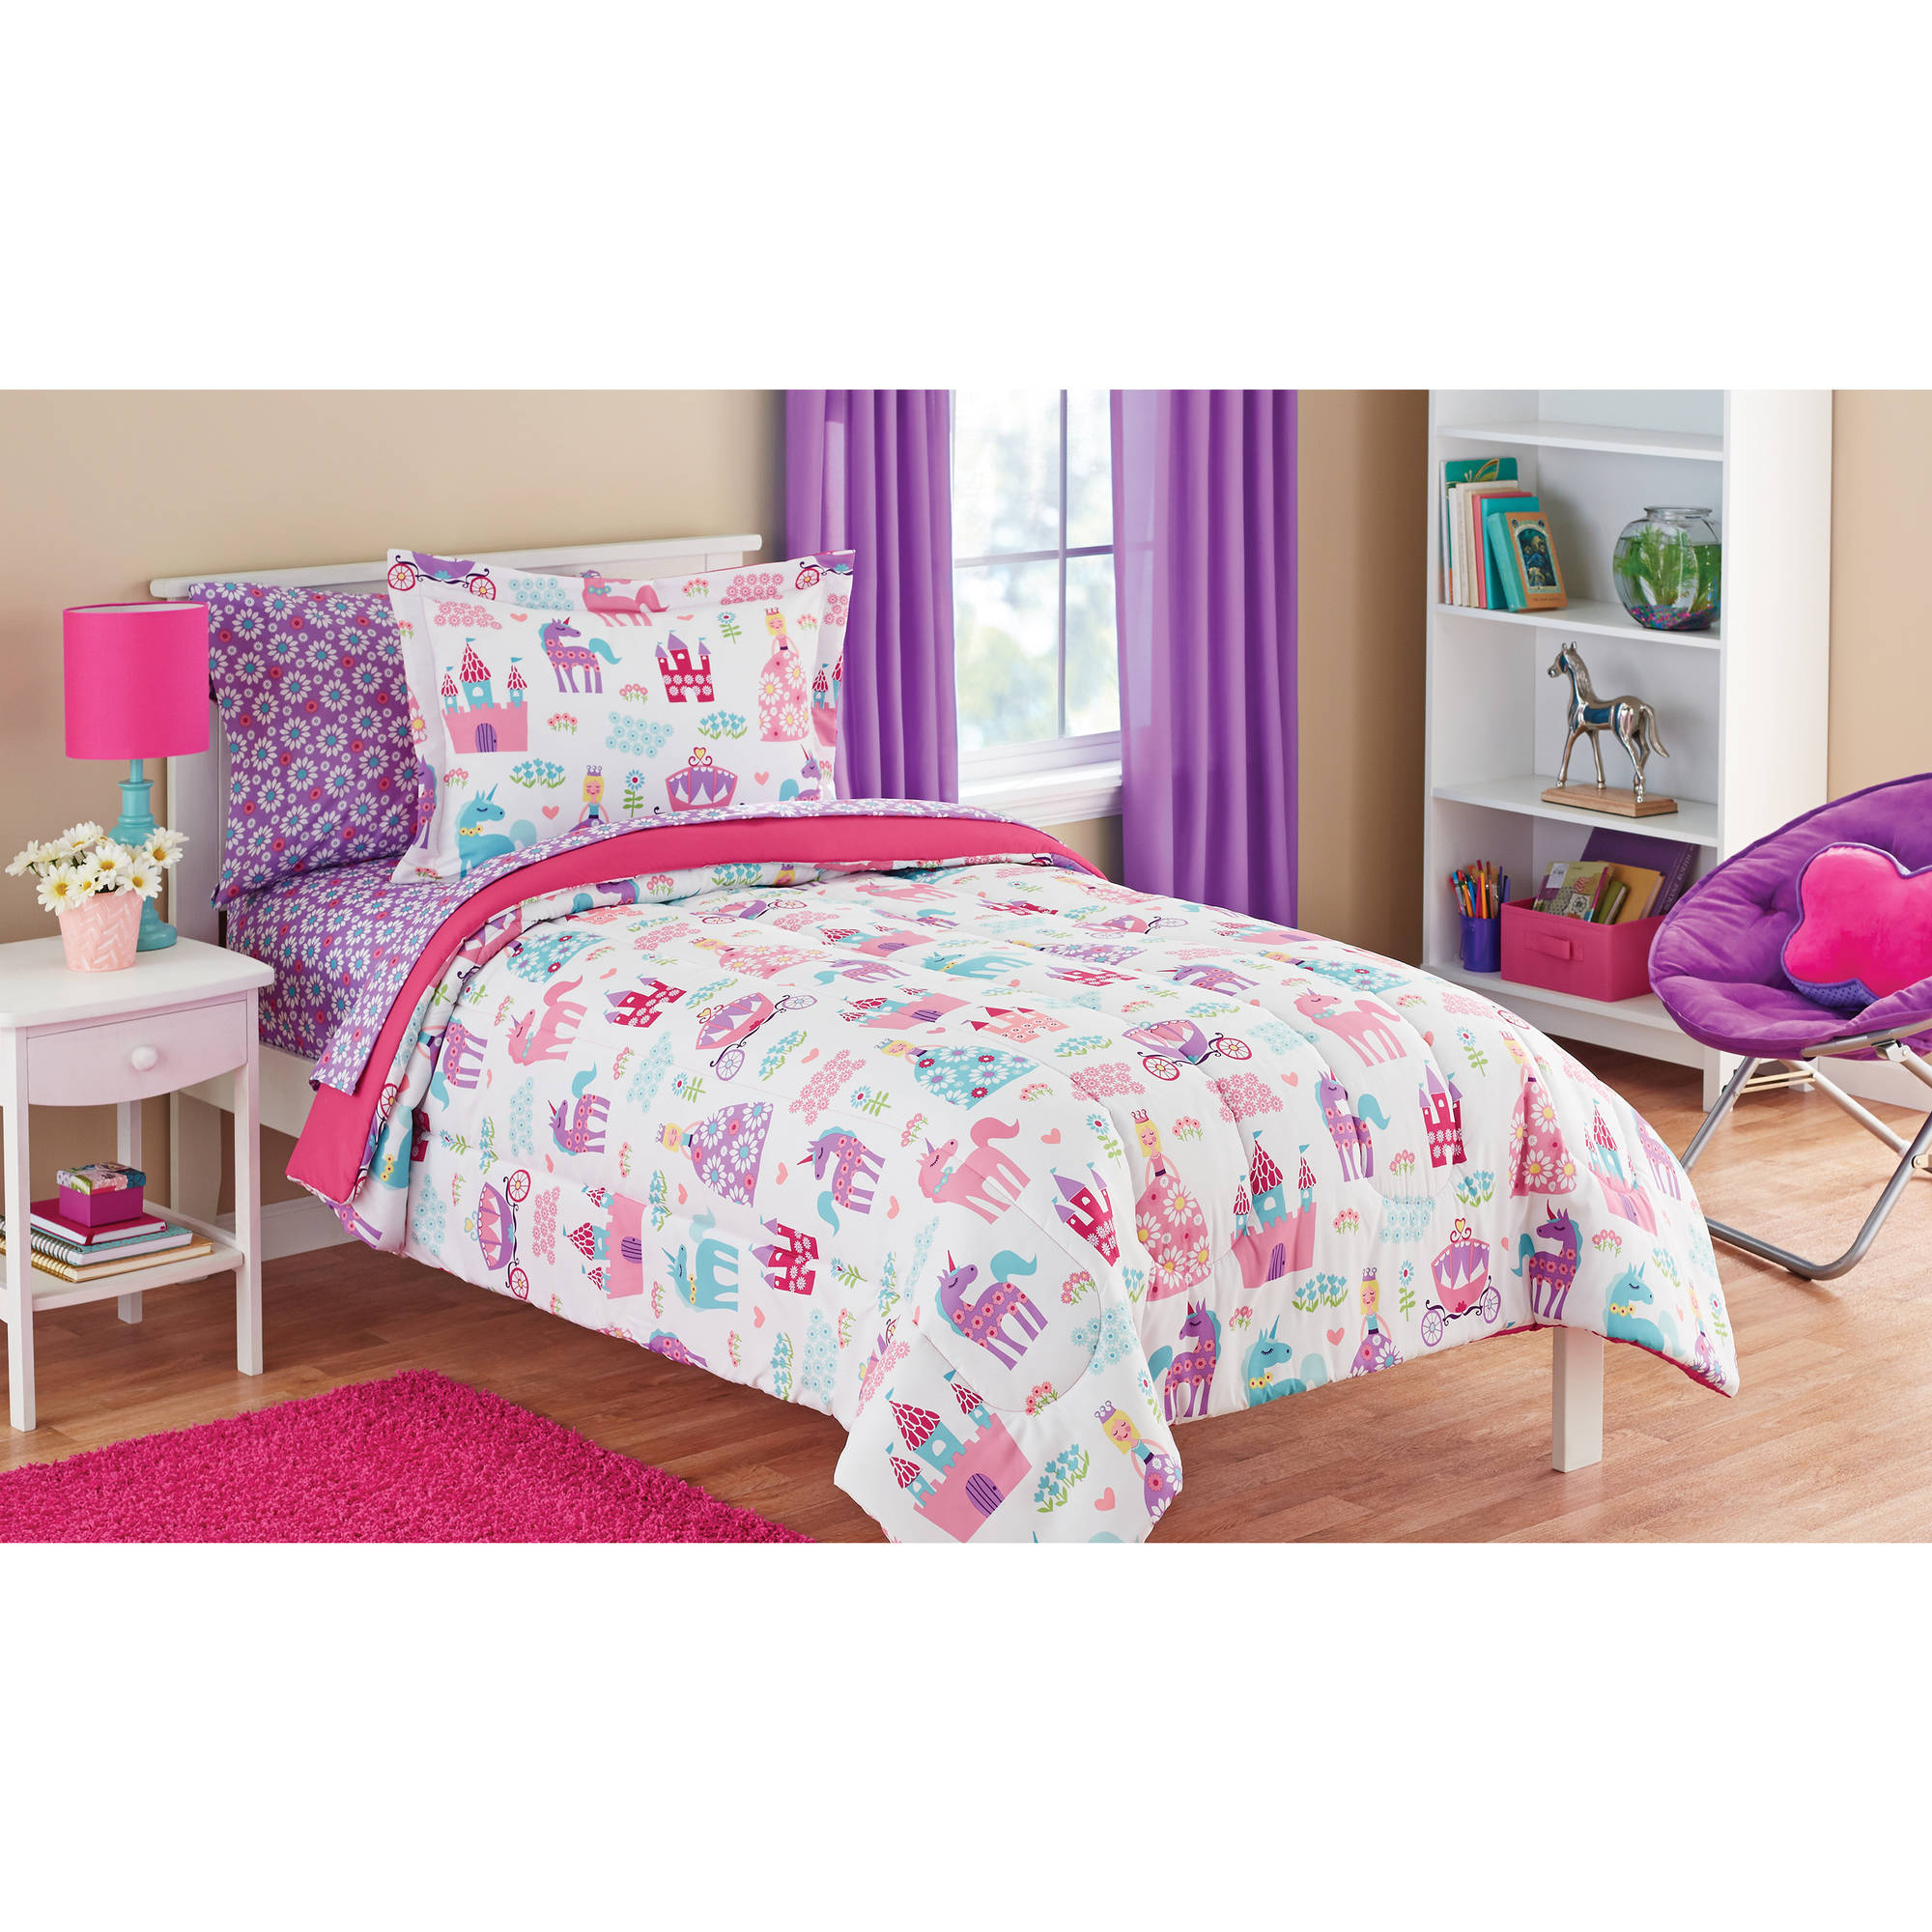 Captivating Mainstays Kids Pretty Princess Bed In A Bag Bedding Set